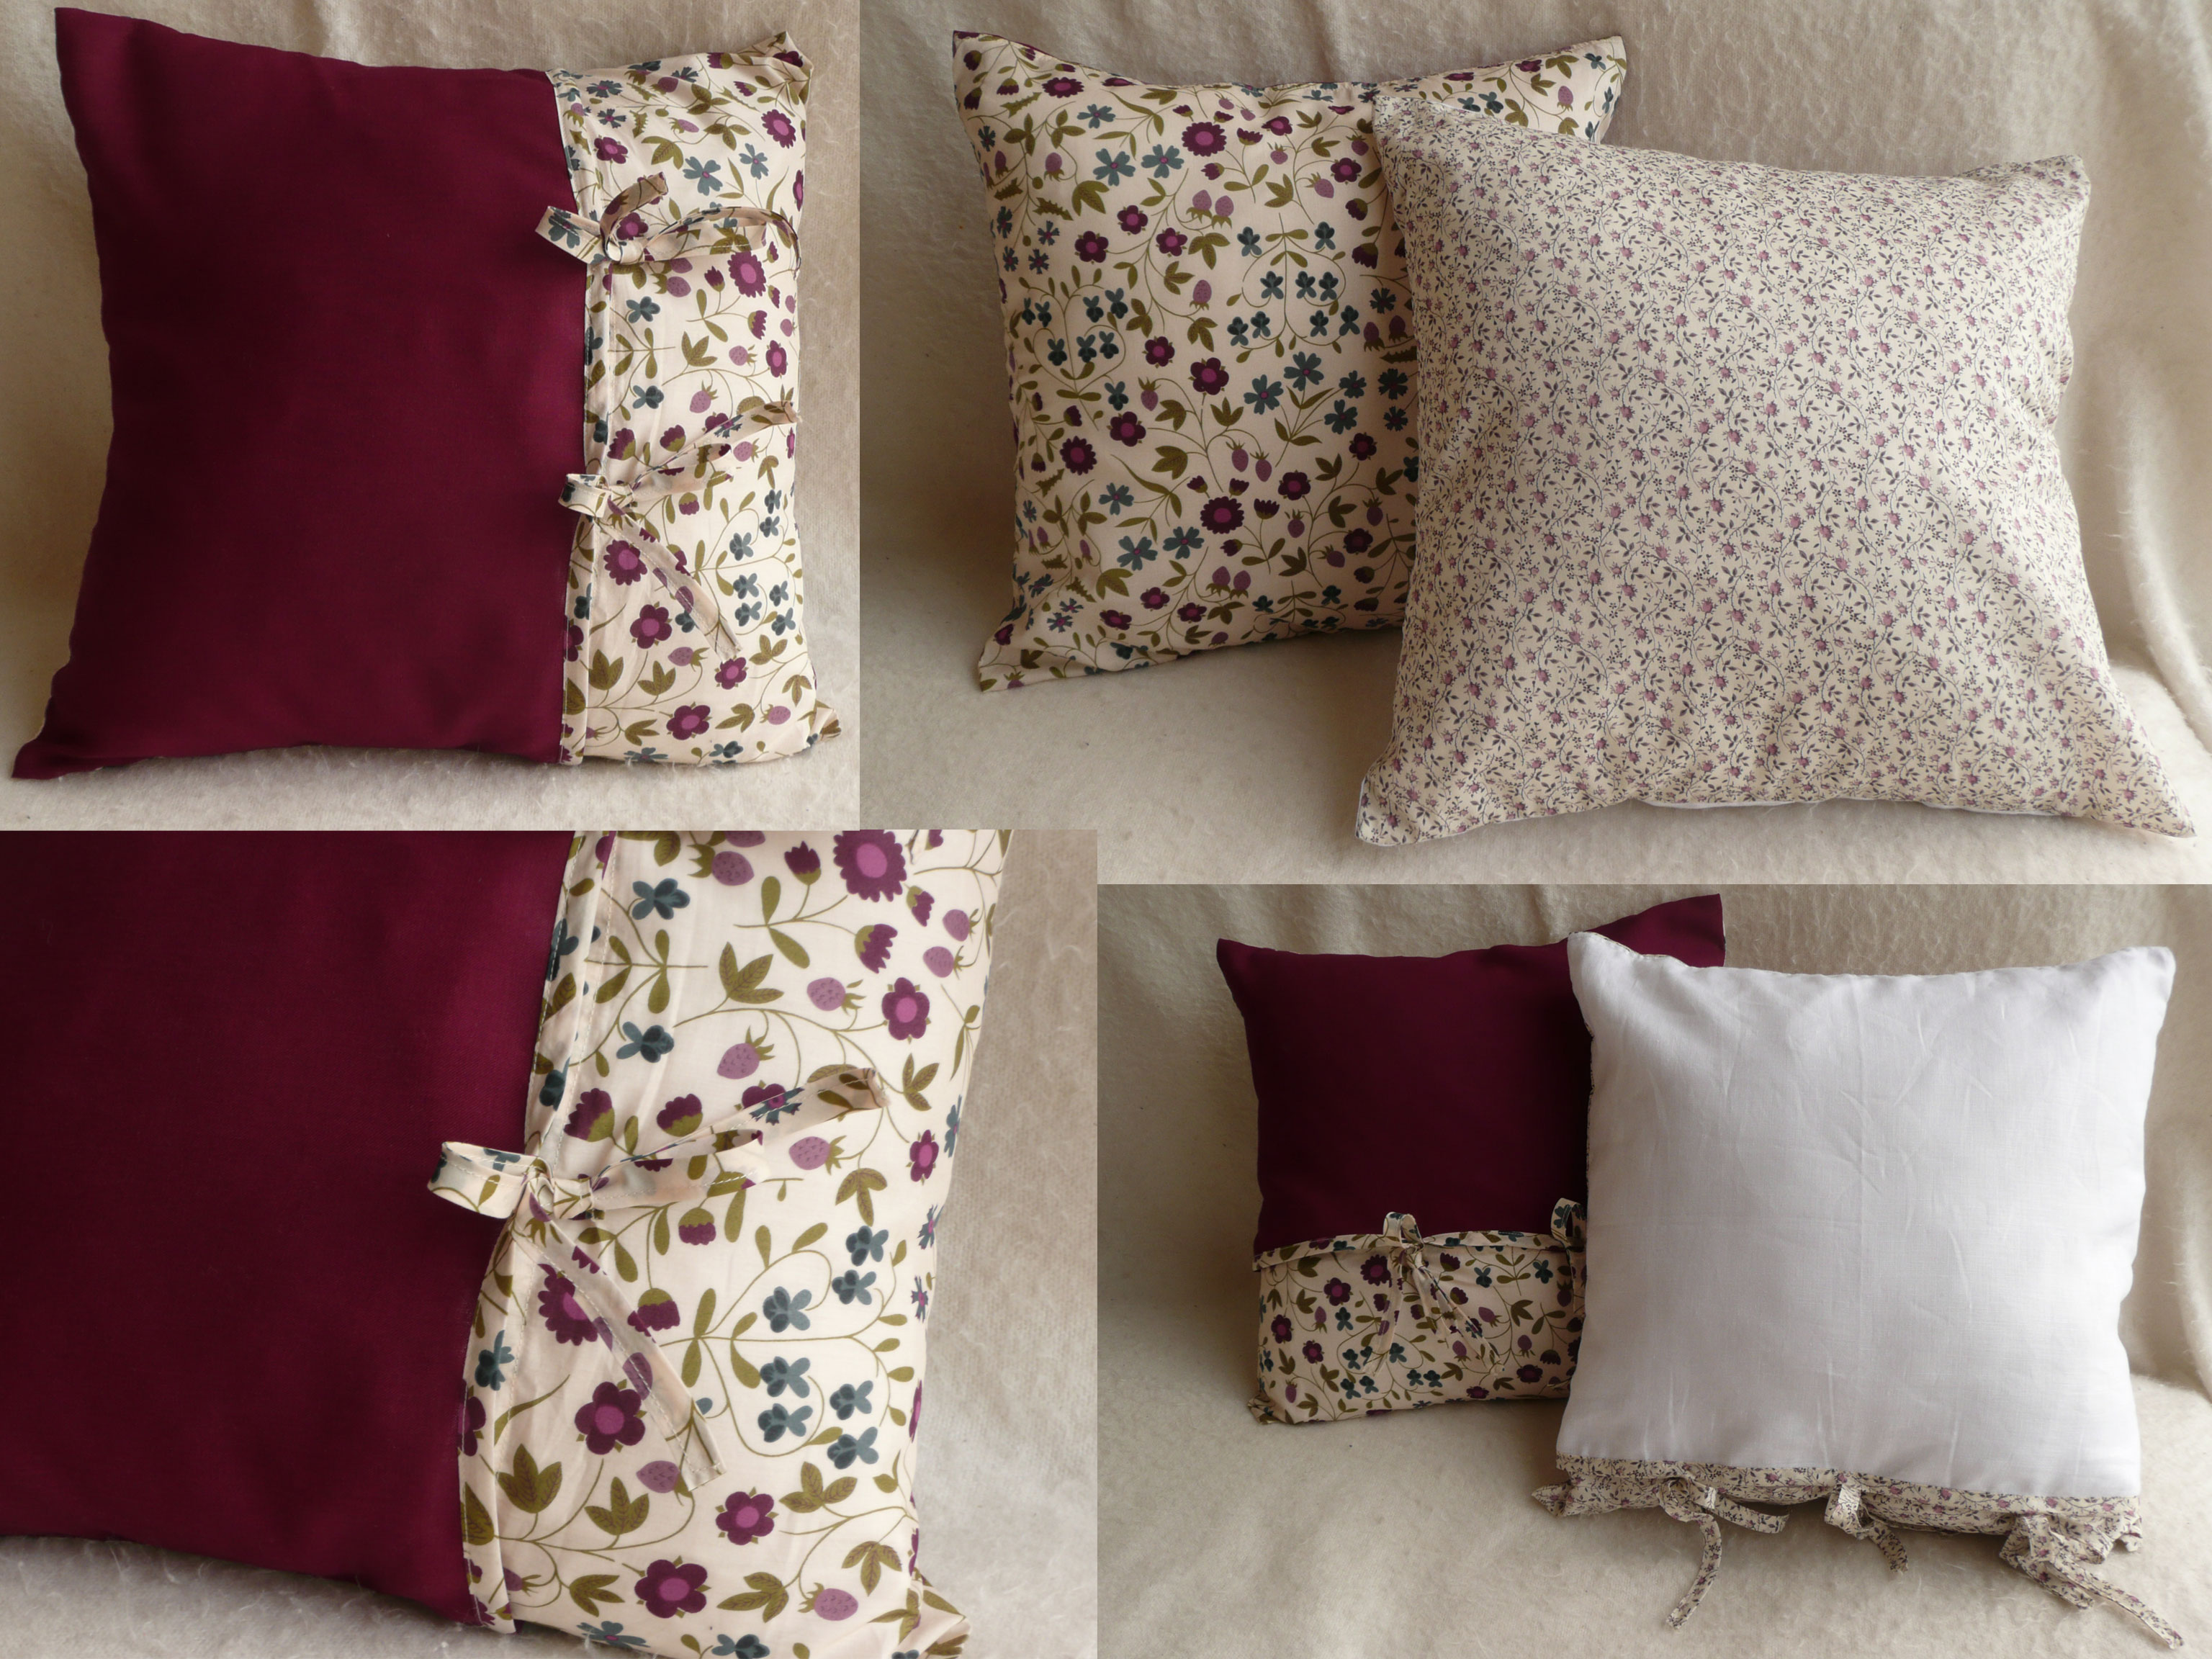 Mod le couture housse coussin 16 for Couture housse coussin facile